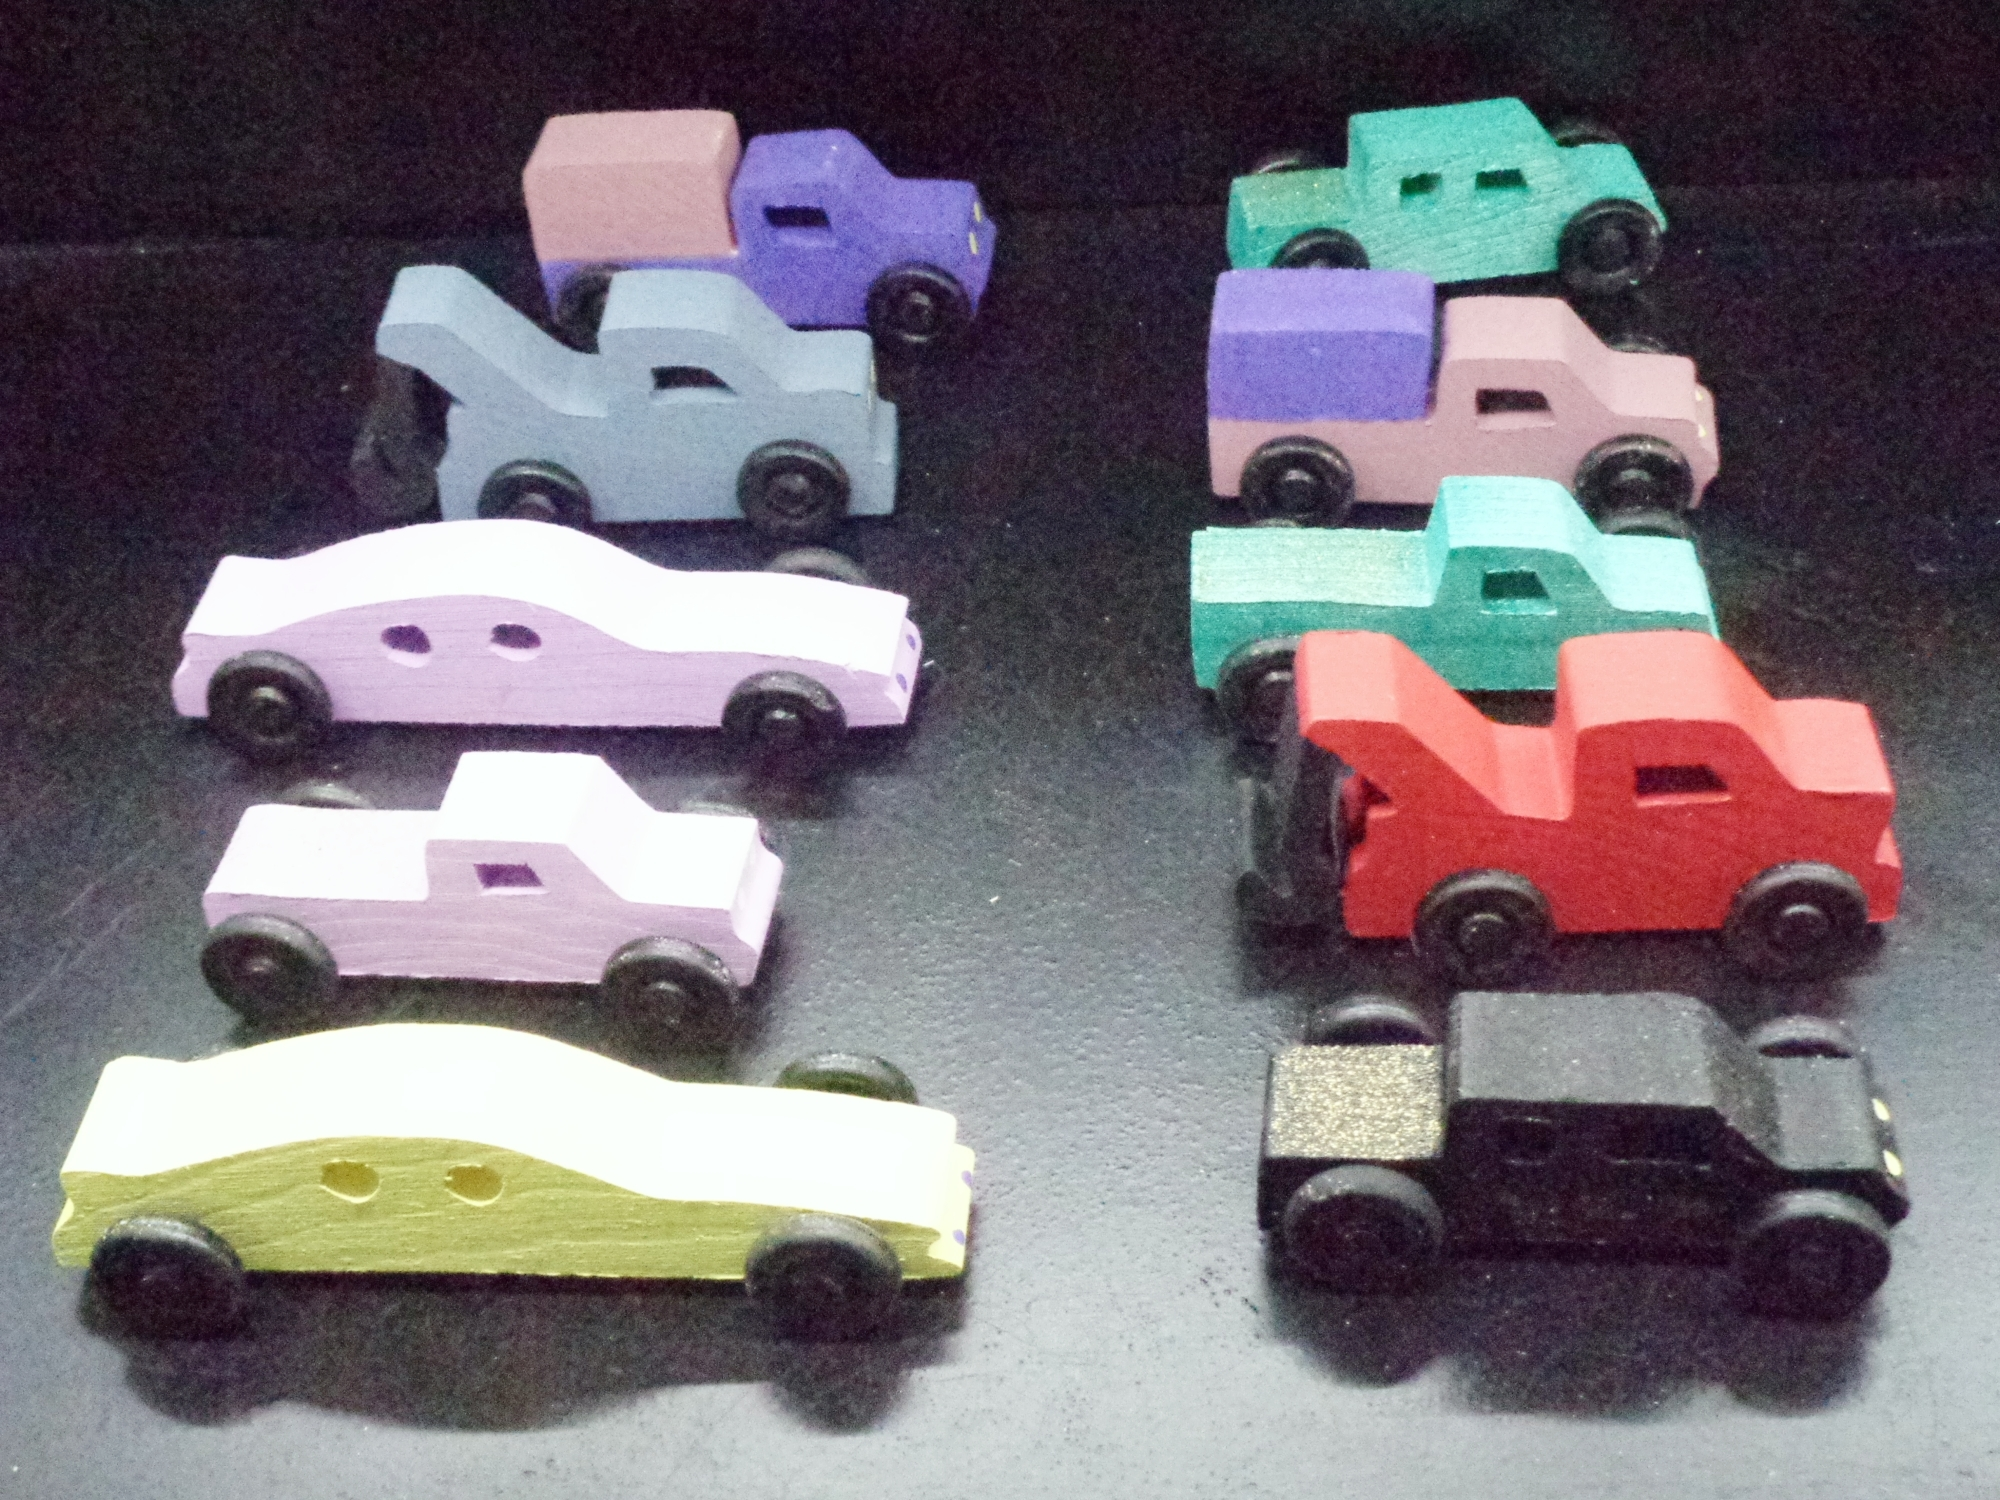 Pkg of 10 Handcrafted Wood Toy  Tow Trucks, Pickups, Cars  OT-25-P   Painted